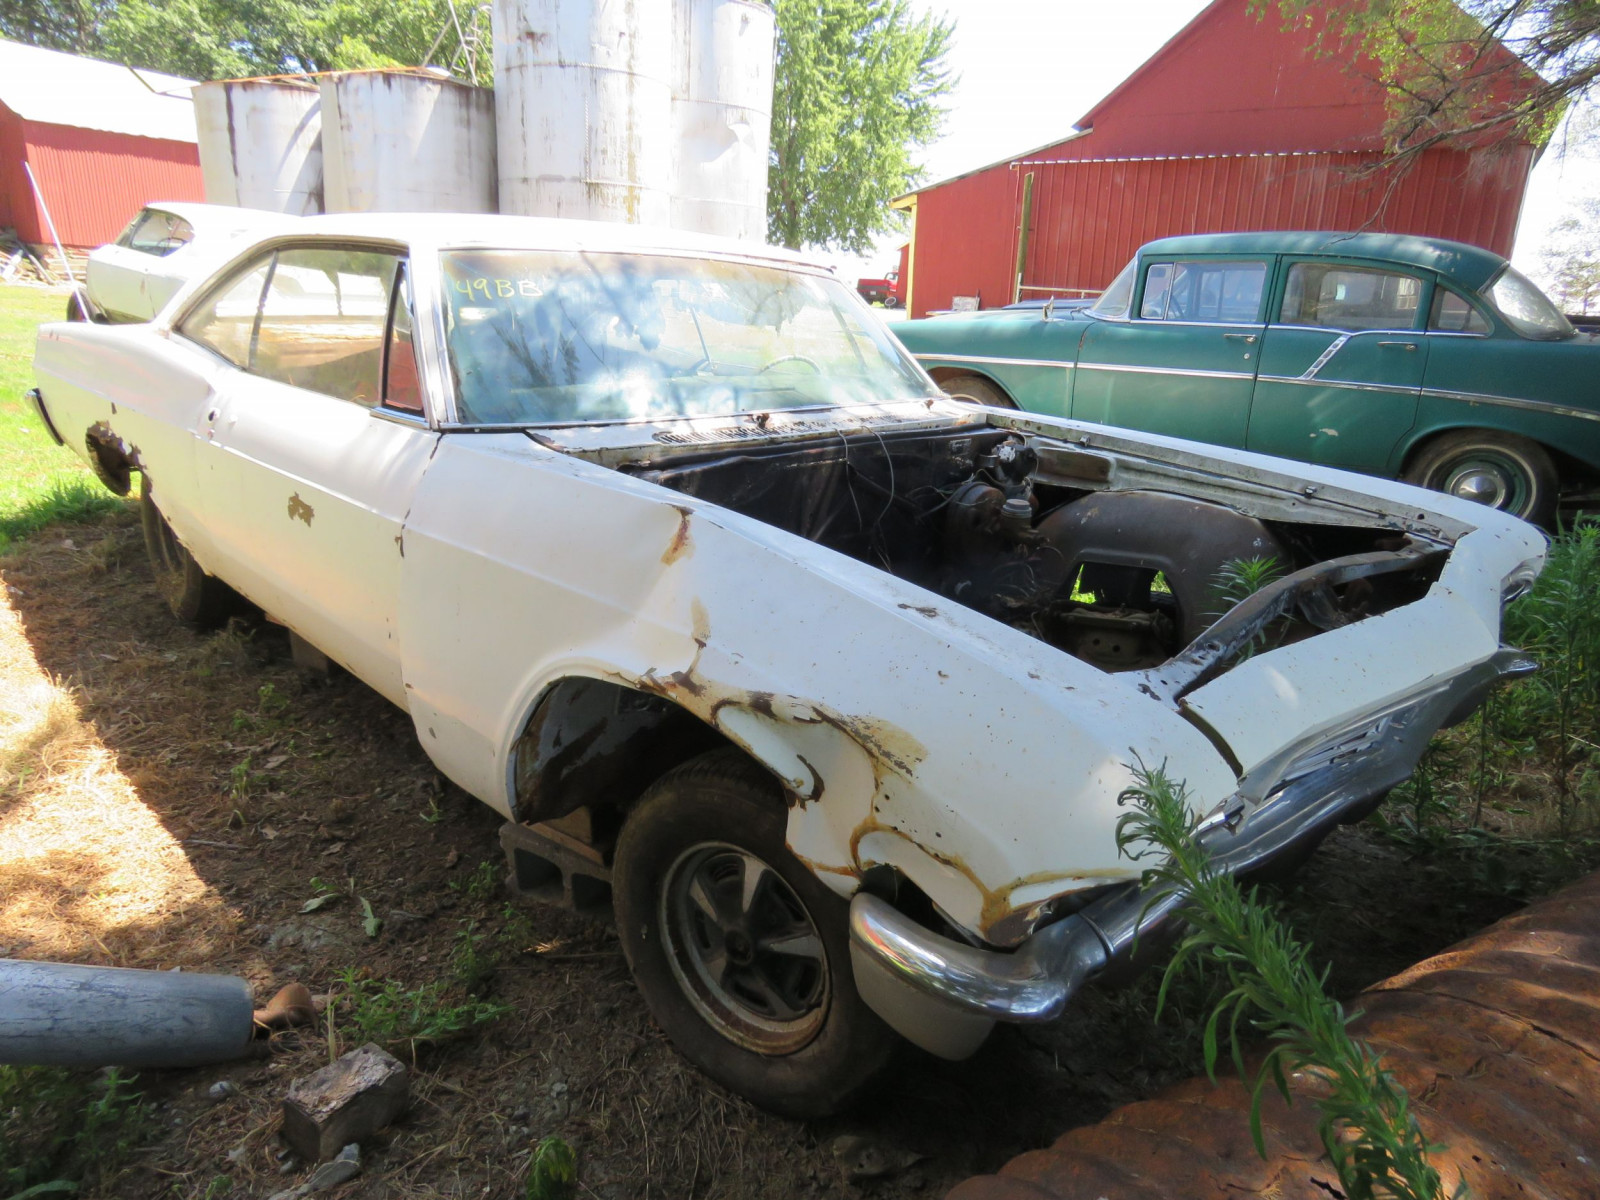 1965 Chevrolet Impala For Project or parts - Image 1